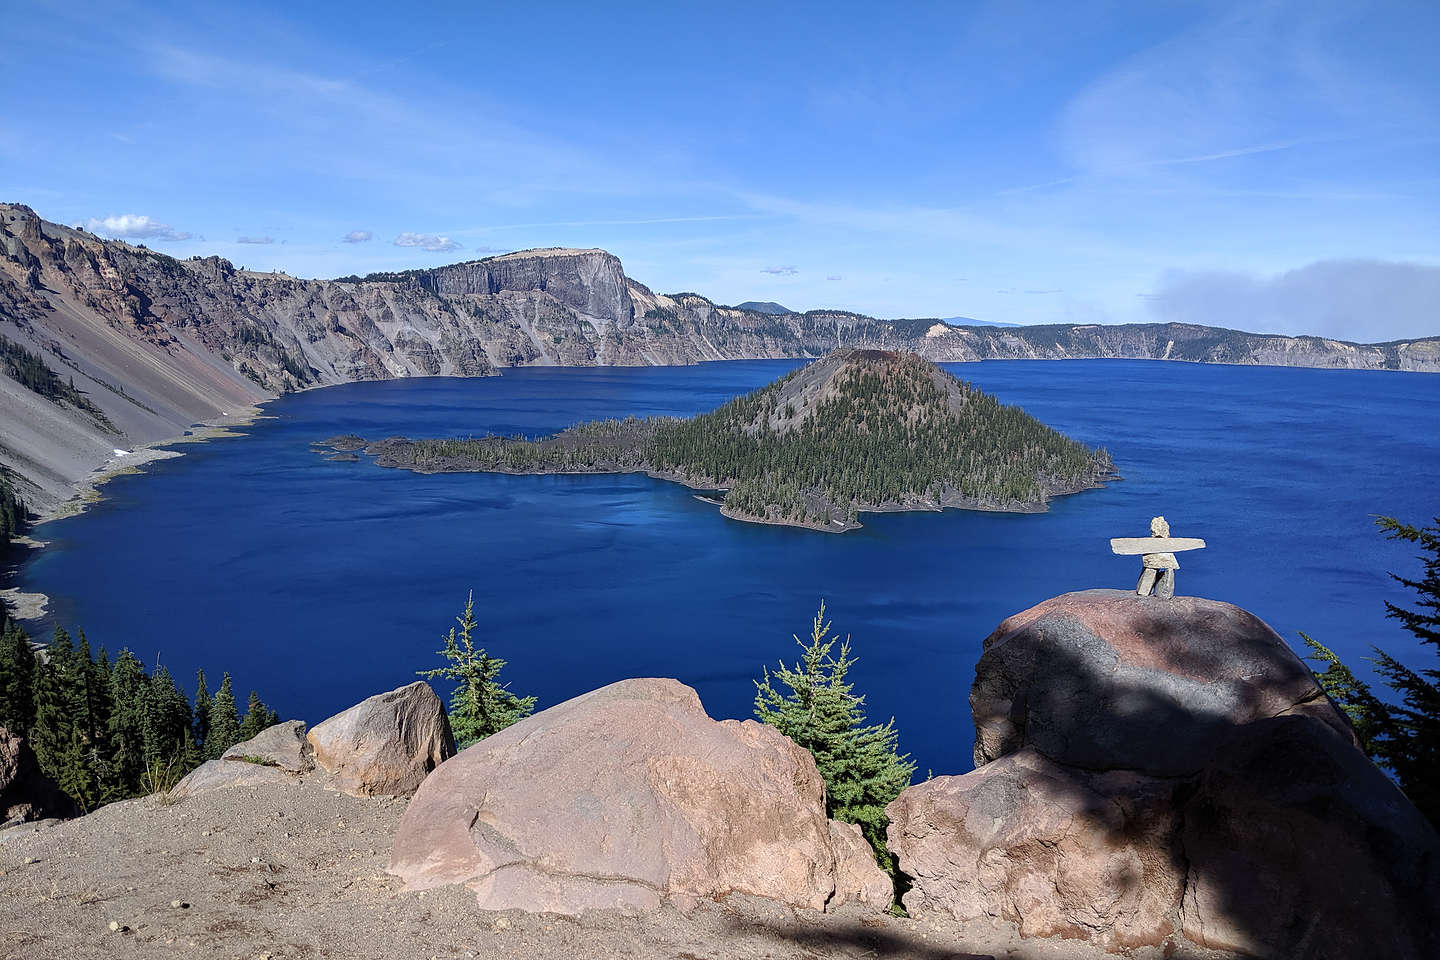 View of Crater Lake and Wizard Island from the Discovery Point Trail